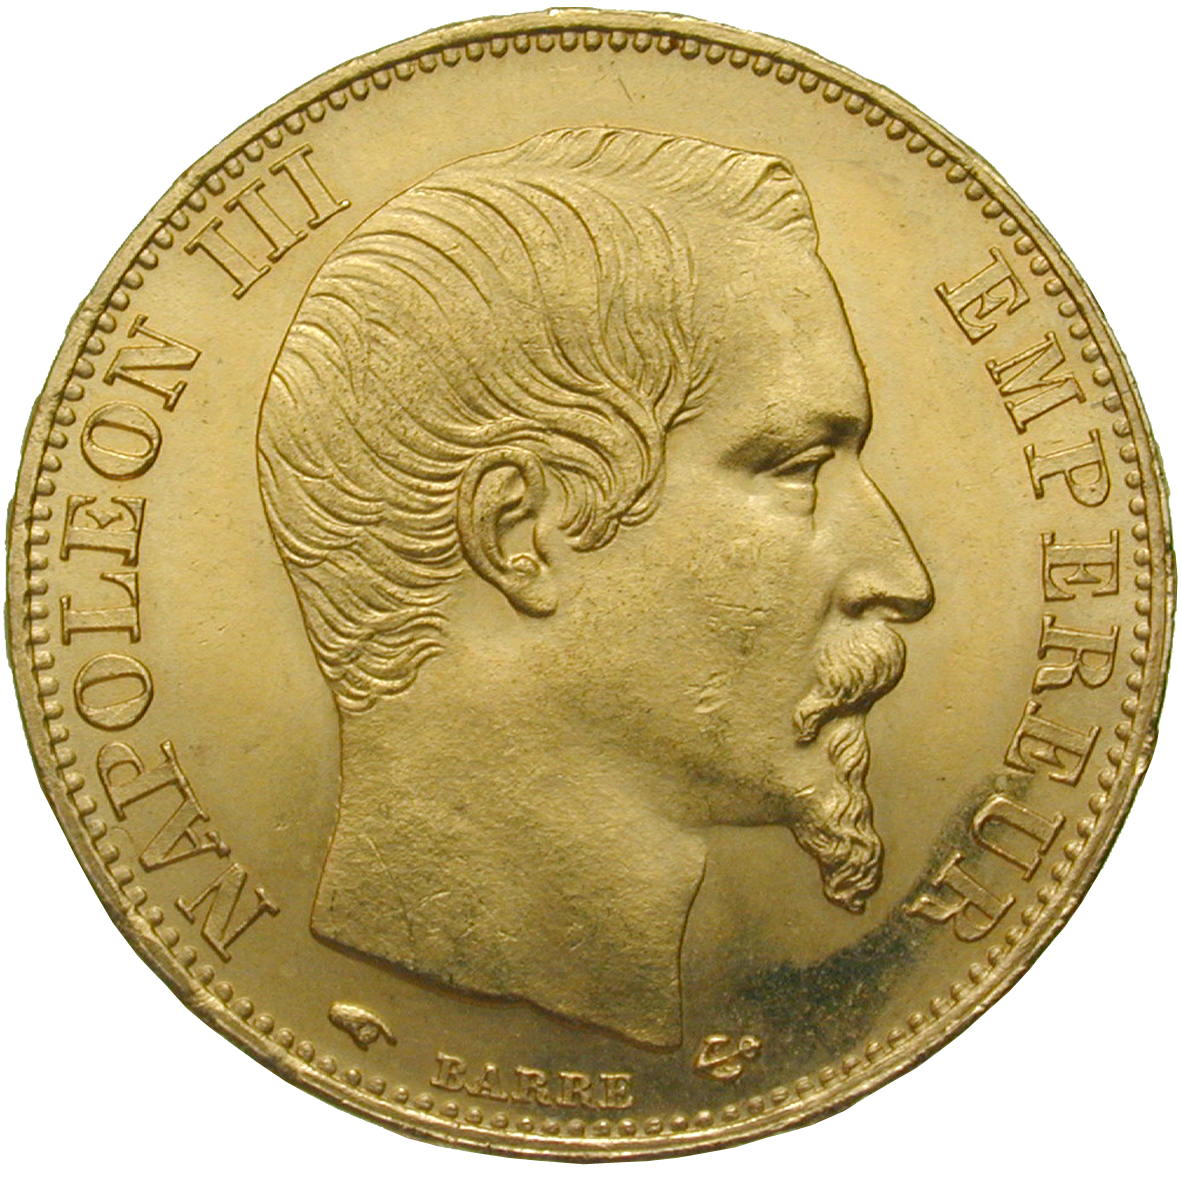 French Empire, Napoleon III, 20 Francs 1856 (obverse)